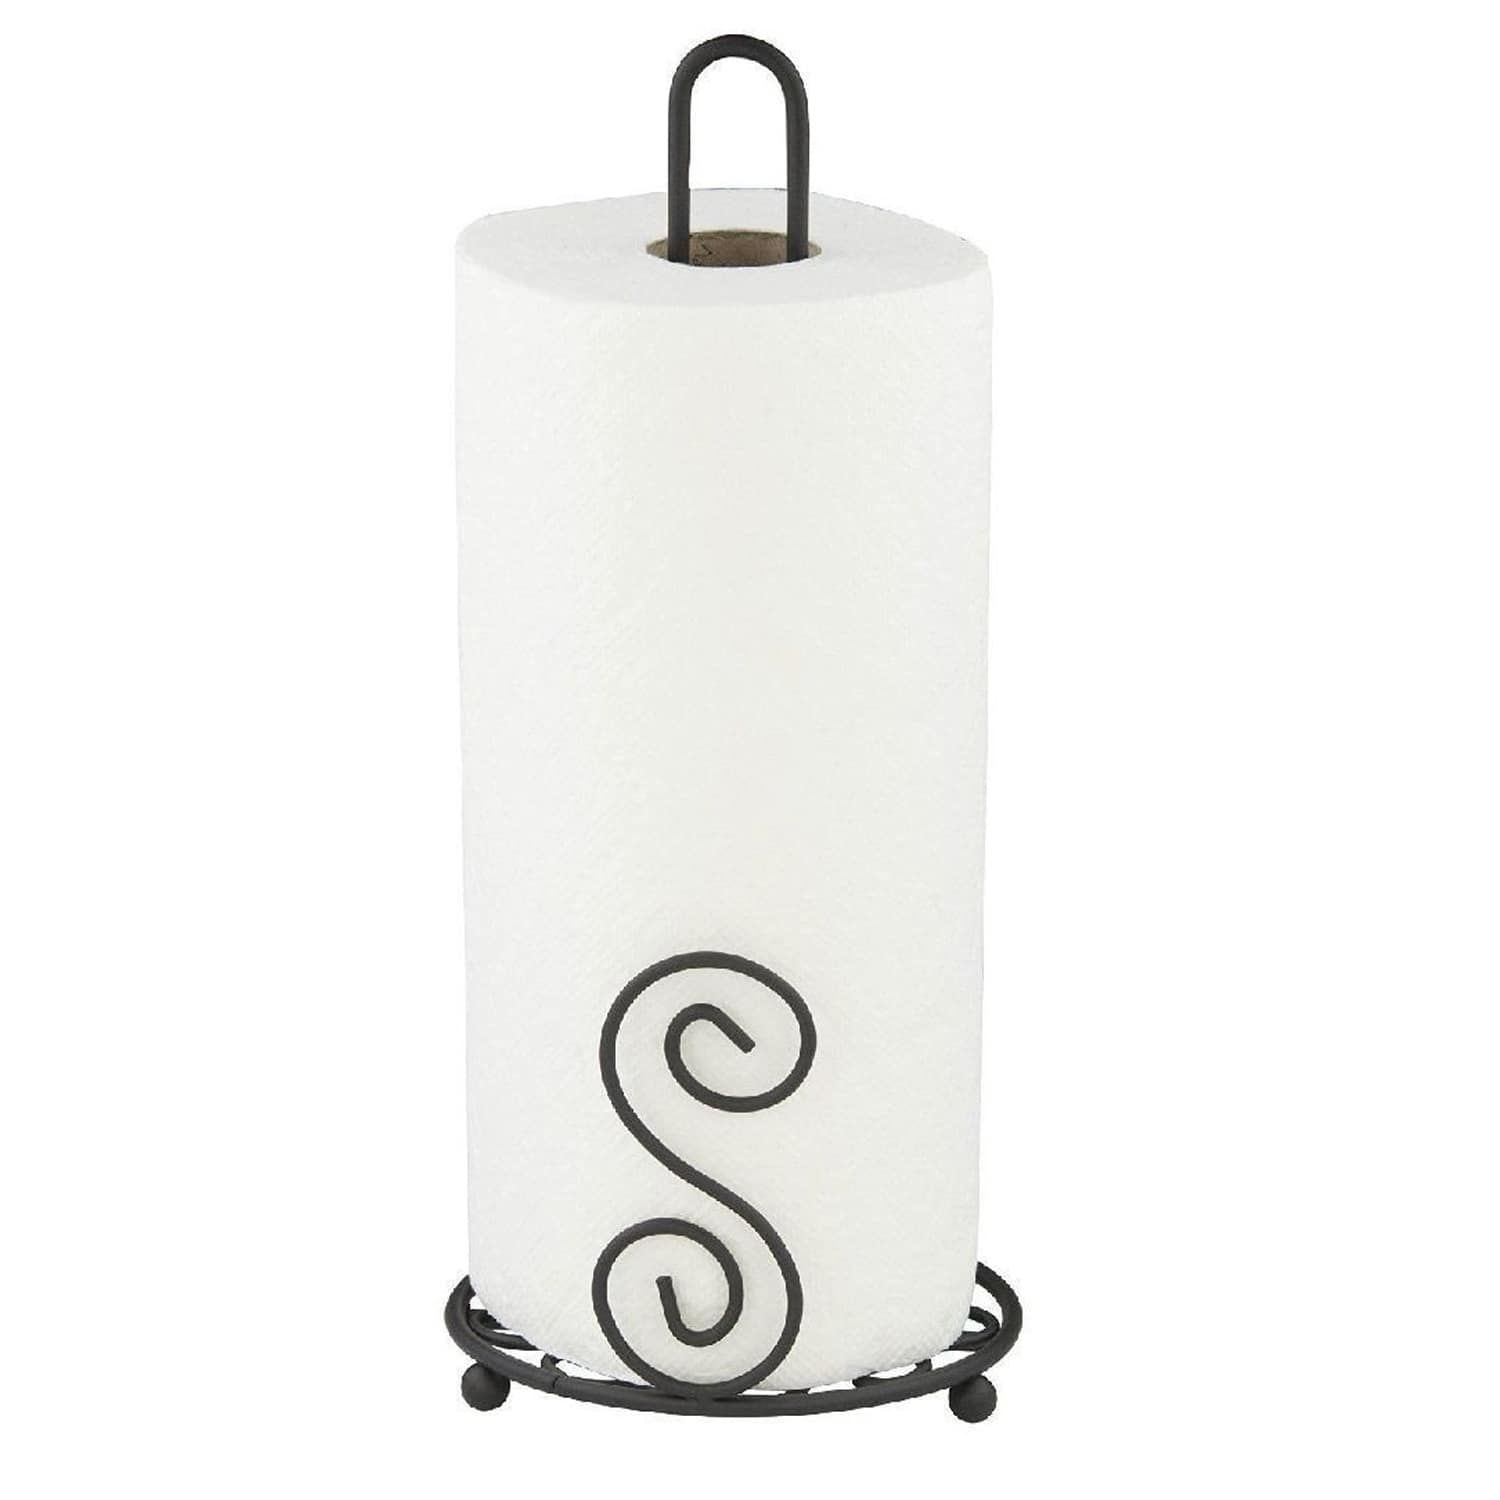 Sweet Home Collection Scroll Collection Black Paper Towel Holder 13 5 X6 X6 Towel Holder Sweet Home Collection Paper Towel Holder